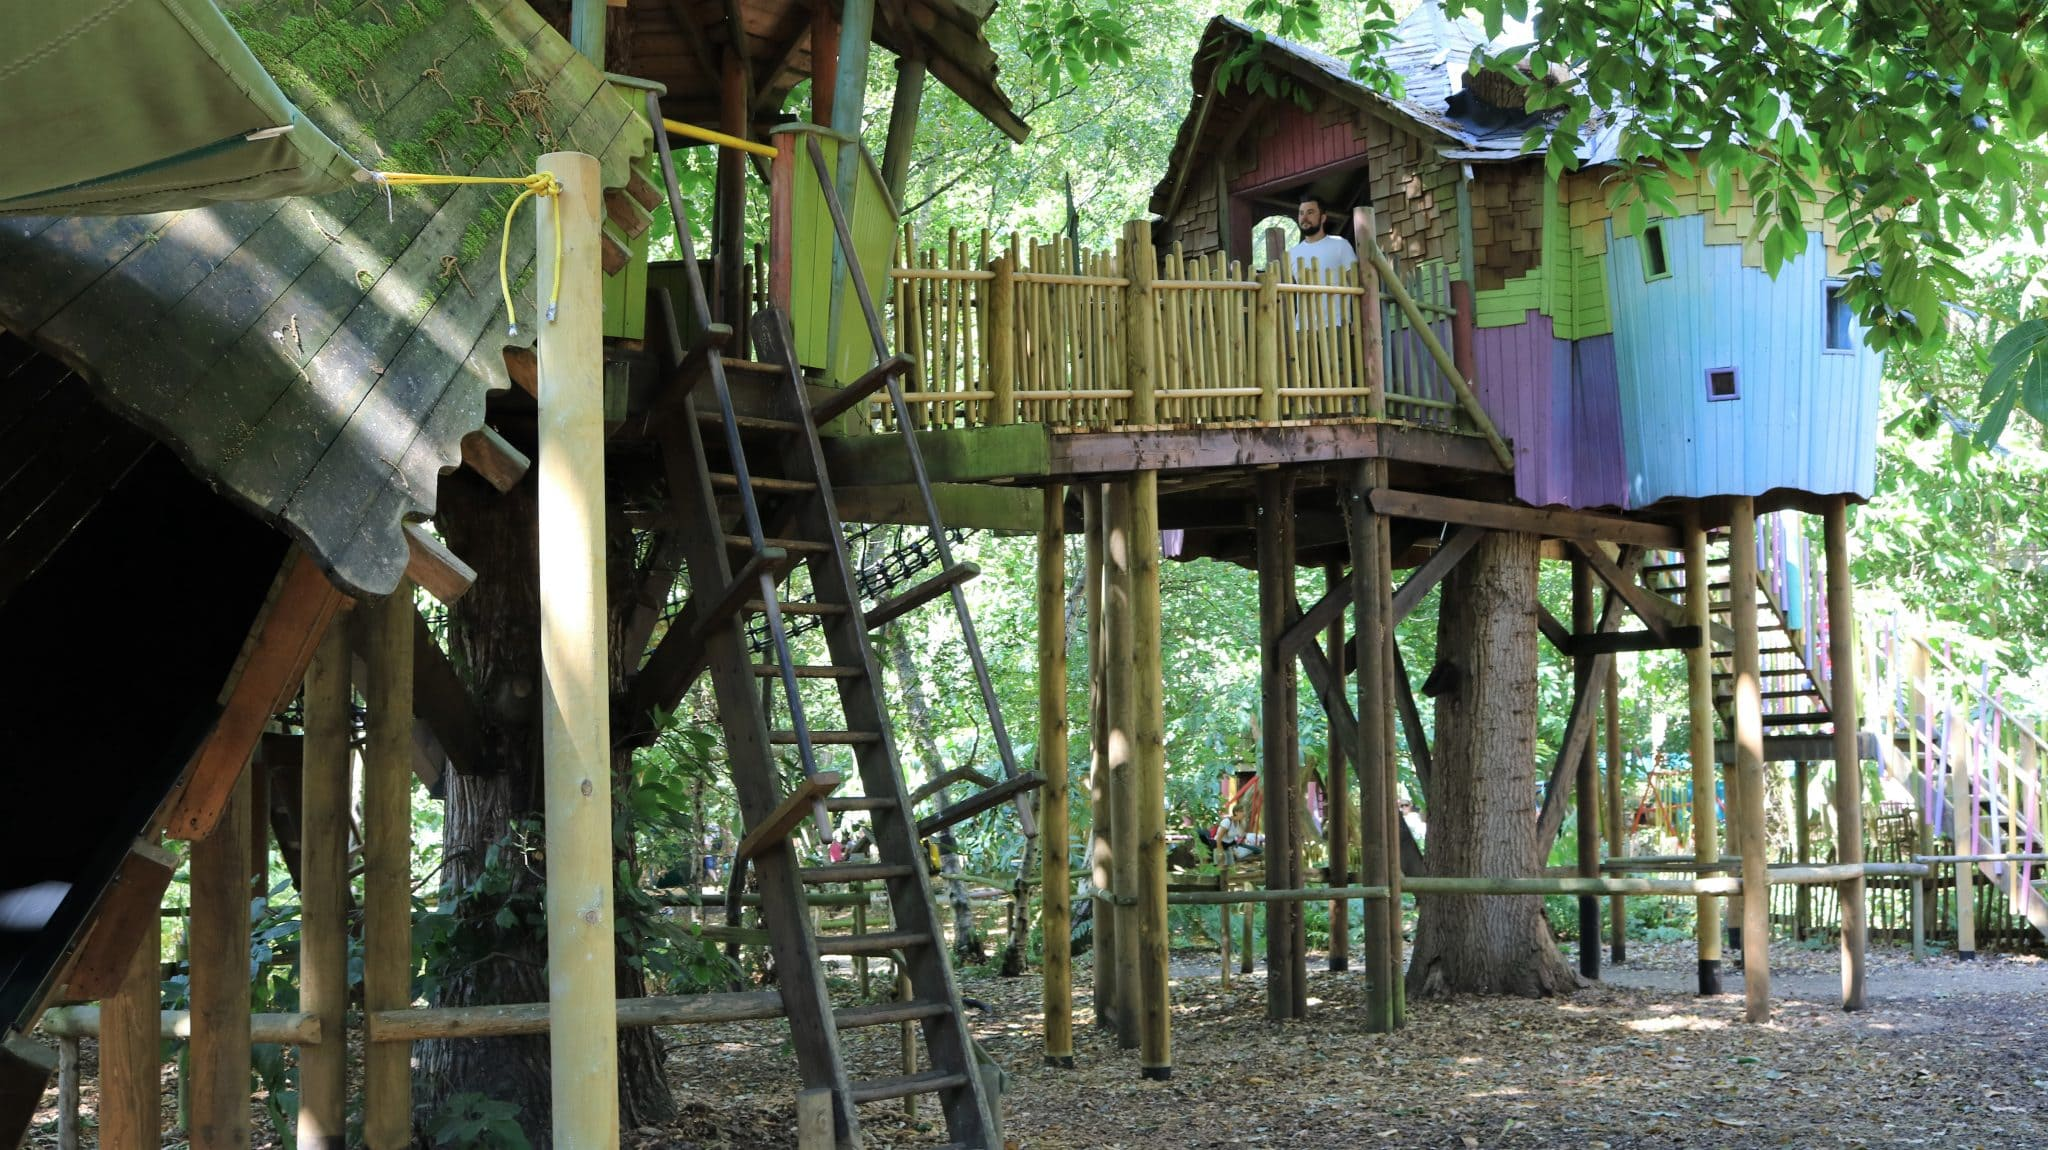 Tree house with a really fun slide